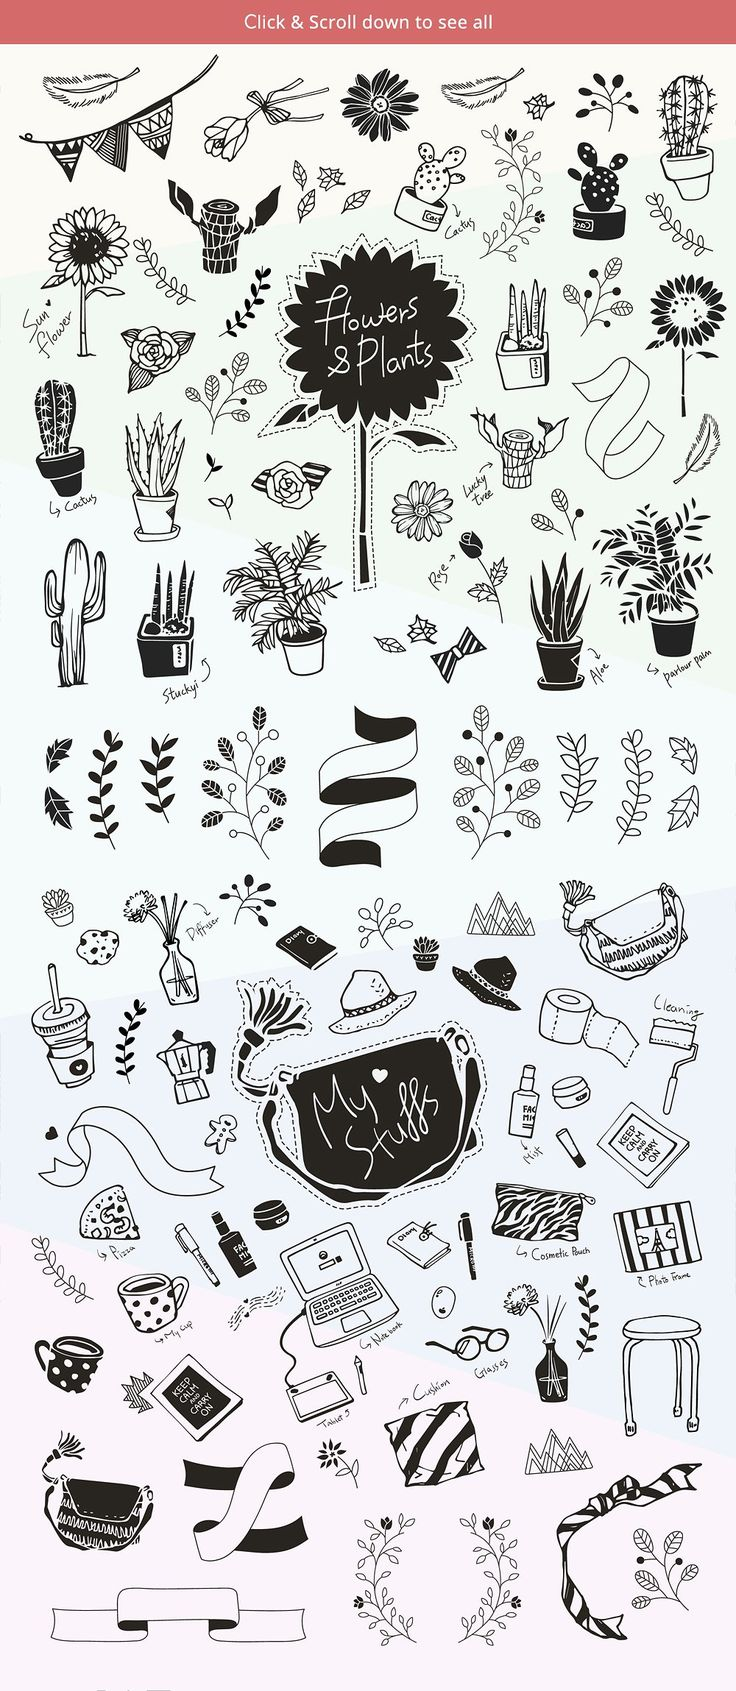 100+ Hand drawn doodles + logo set  by LoftyAA on @creativemarket